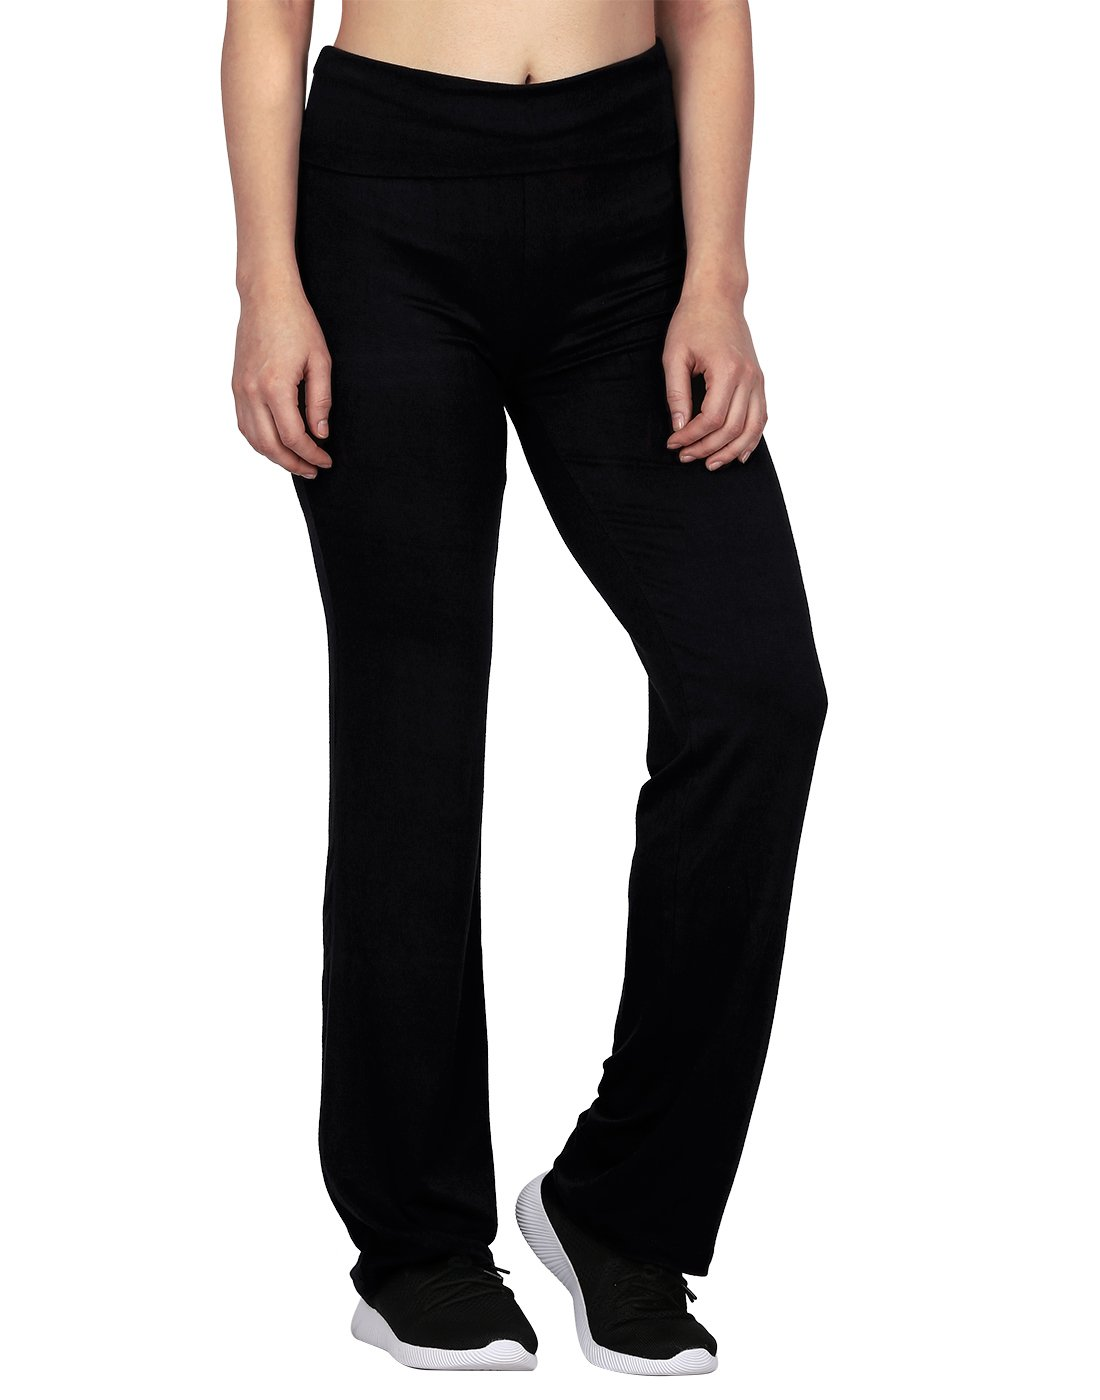 HDE Women's Maternity Yoga Pants Comfortable Lounge Pregnancy Pants Folded Waist (Black, Large)